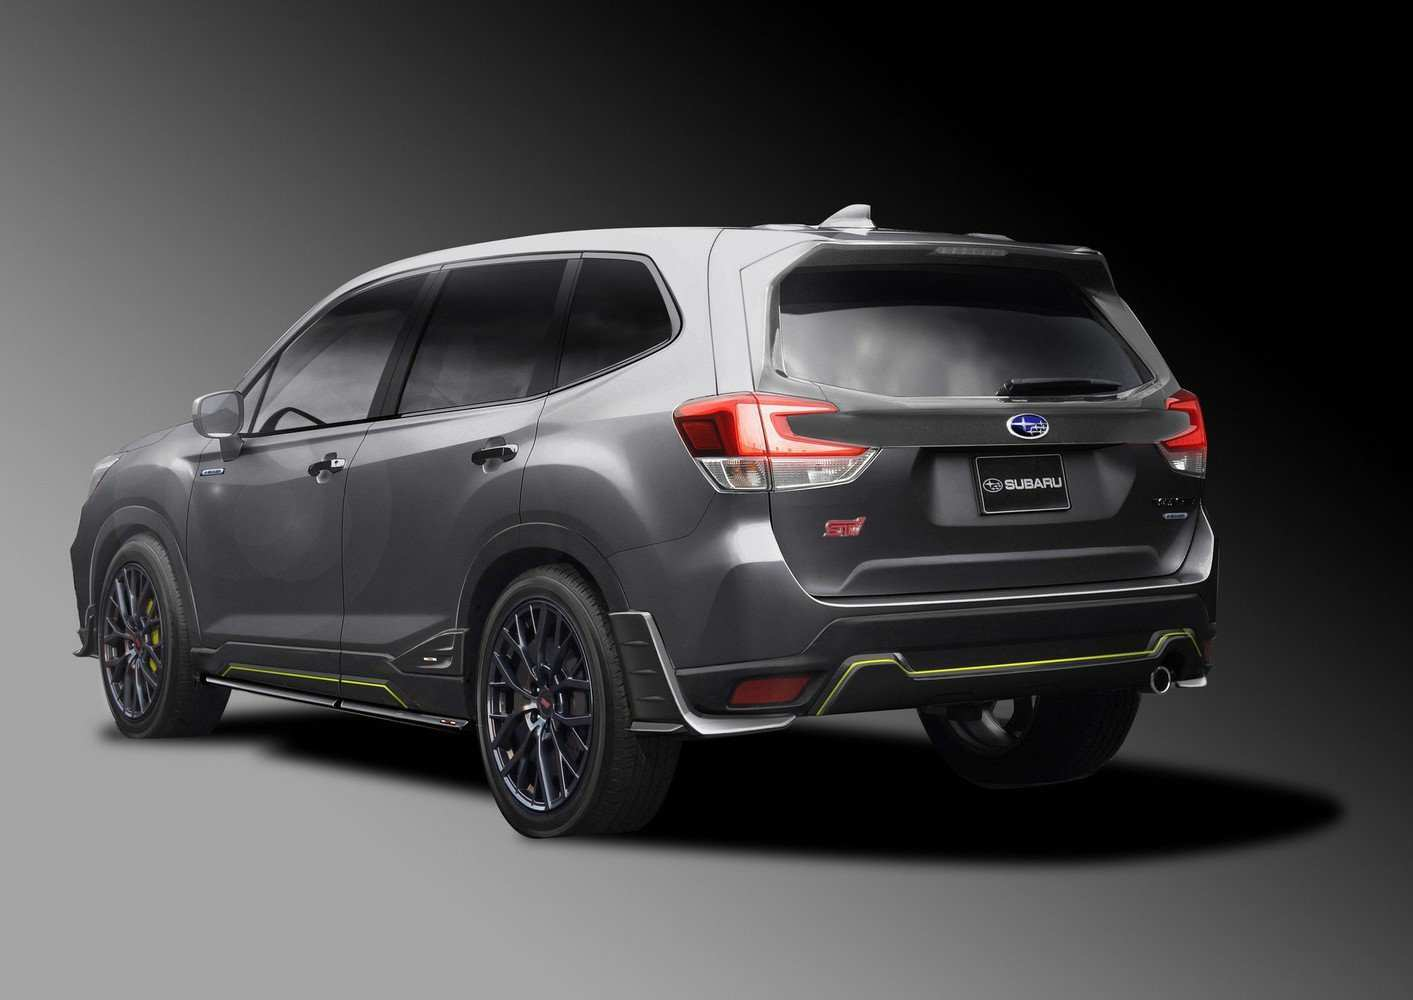 92 The Best Subaru Forester Sti 2020 Exterior